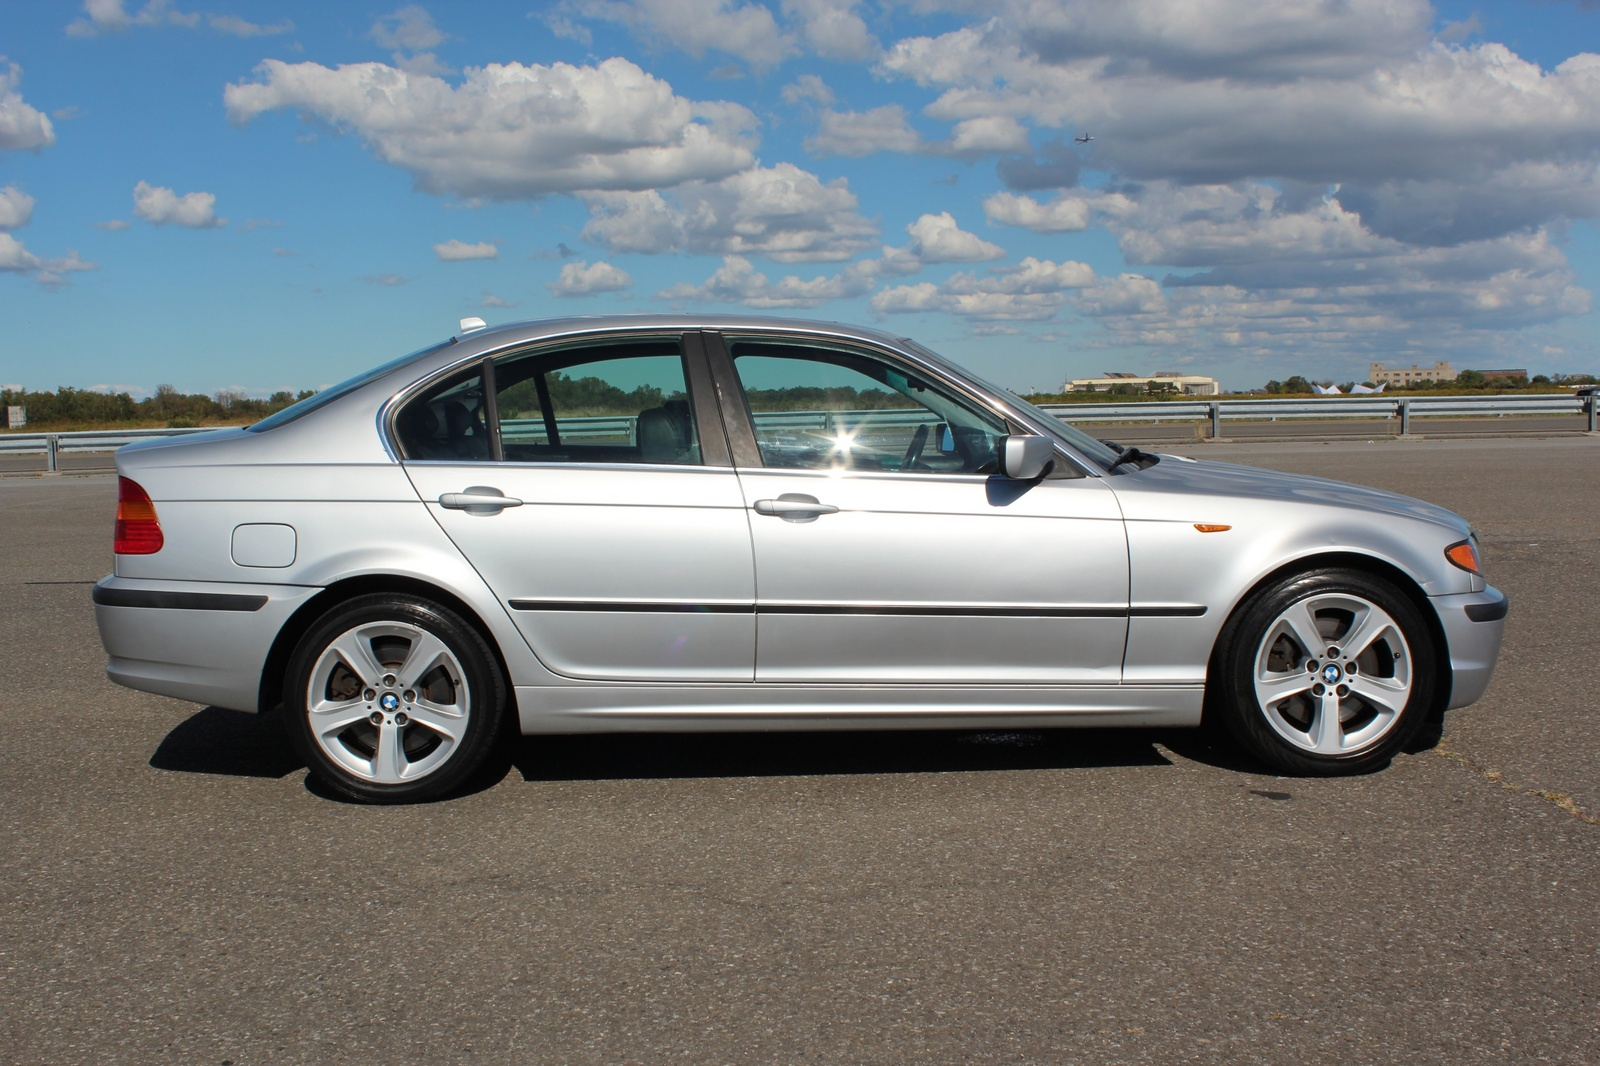 BMW 3 series 335xi 2004 photo - 8